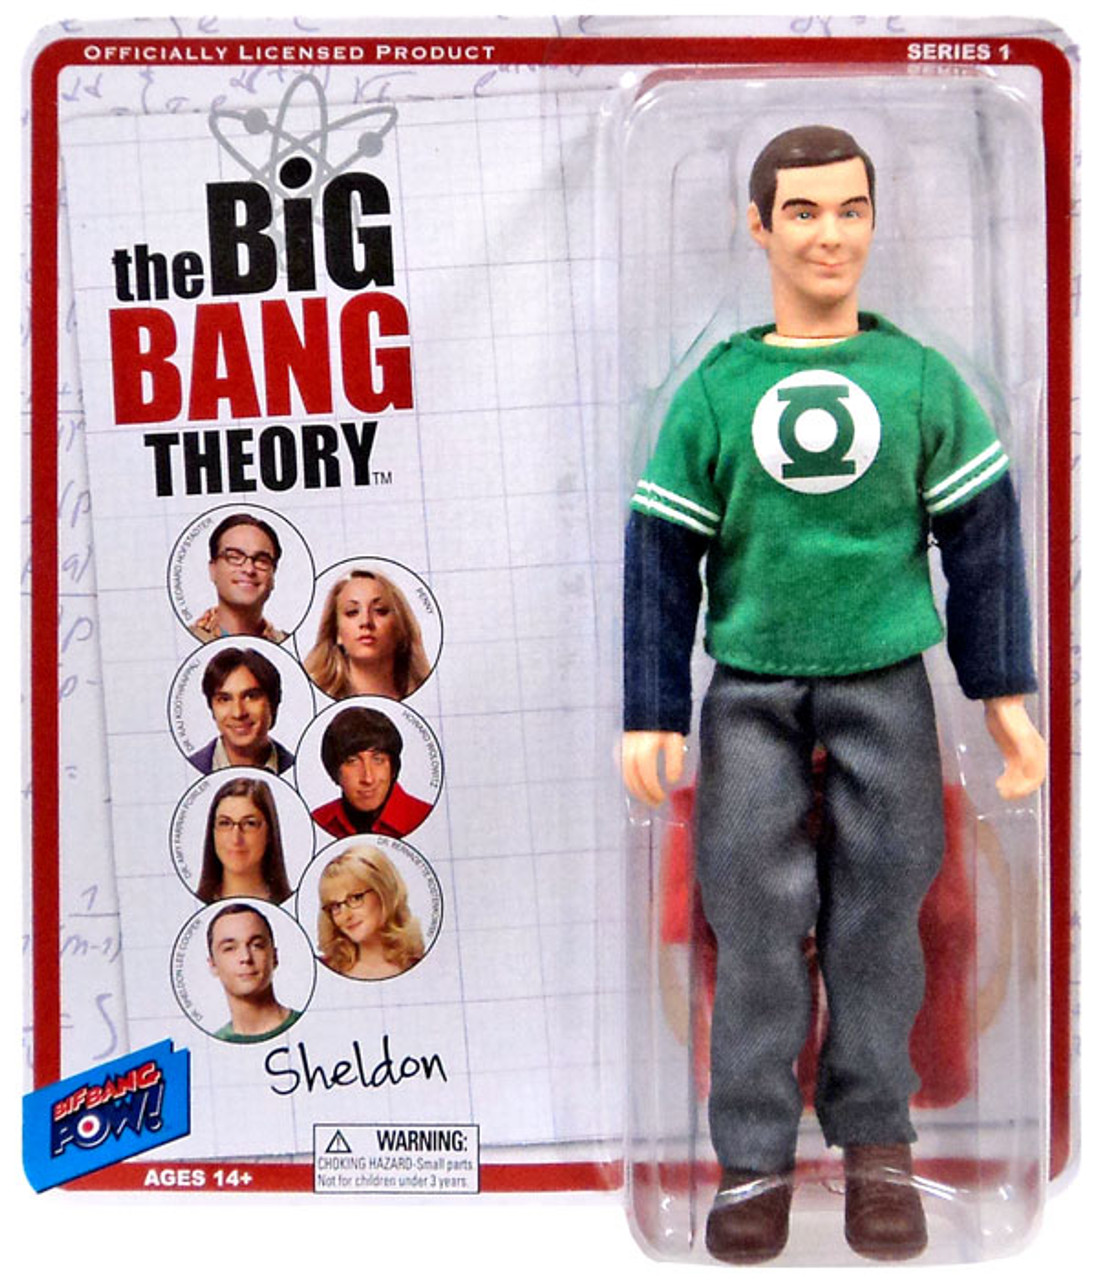 The Big Bang Theory Retro Style Sheldon Action Figure [Green Lantern & Flash Shirt]